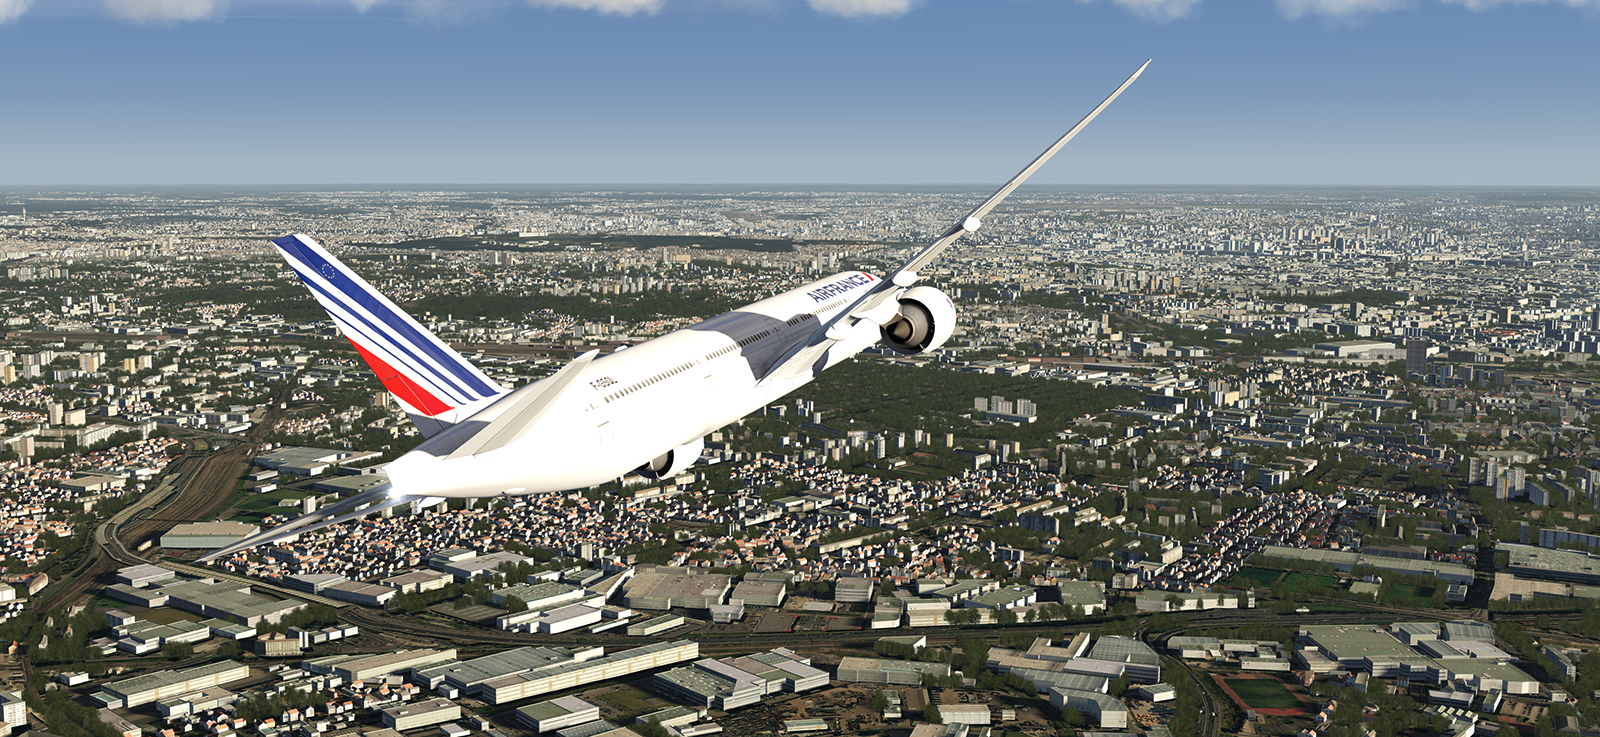 T7 over Paris